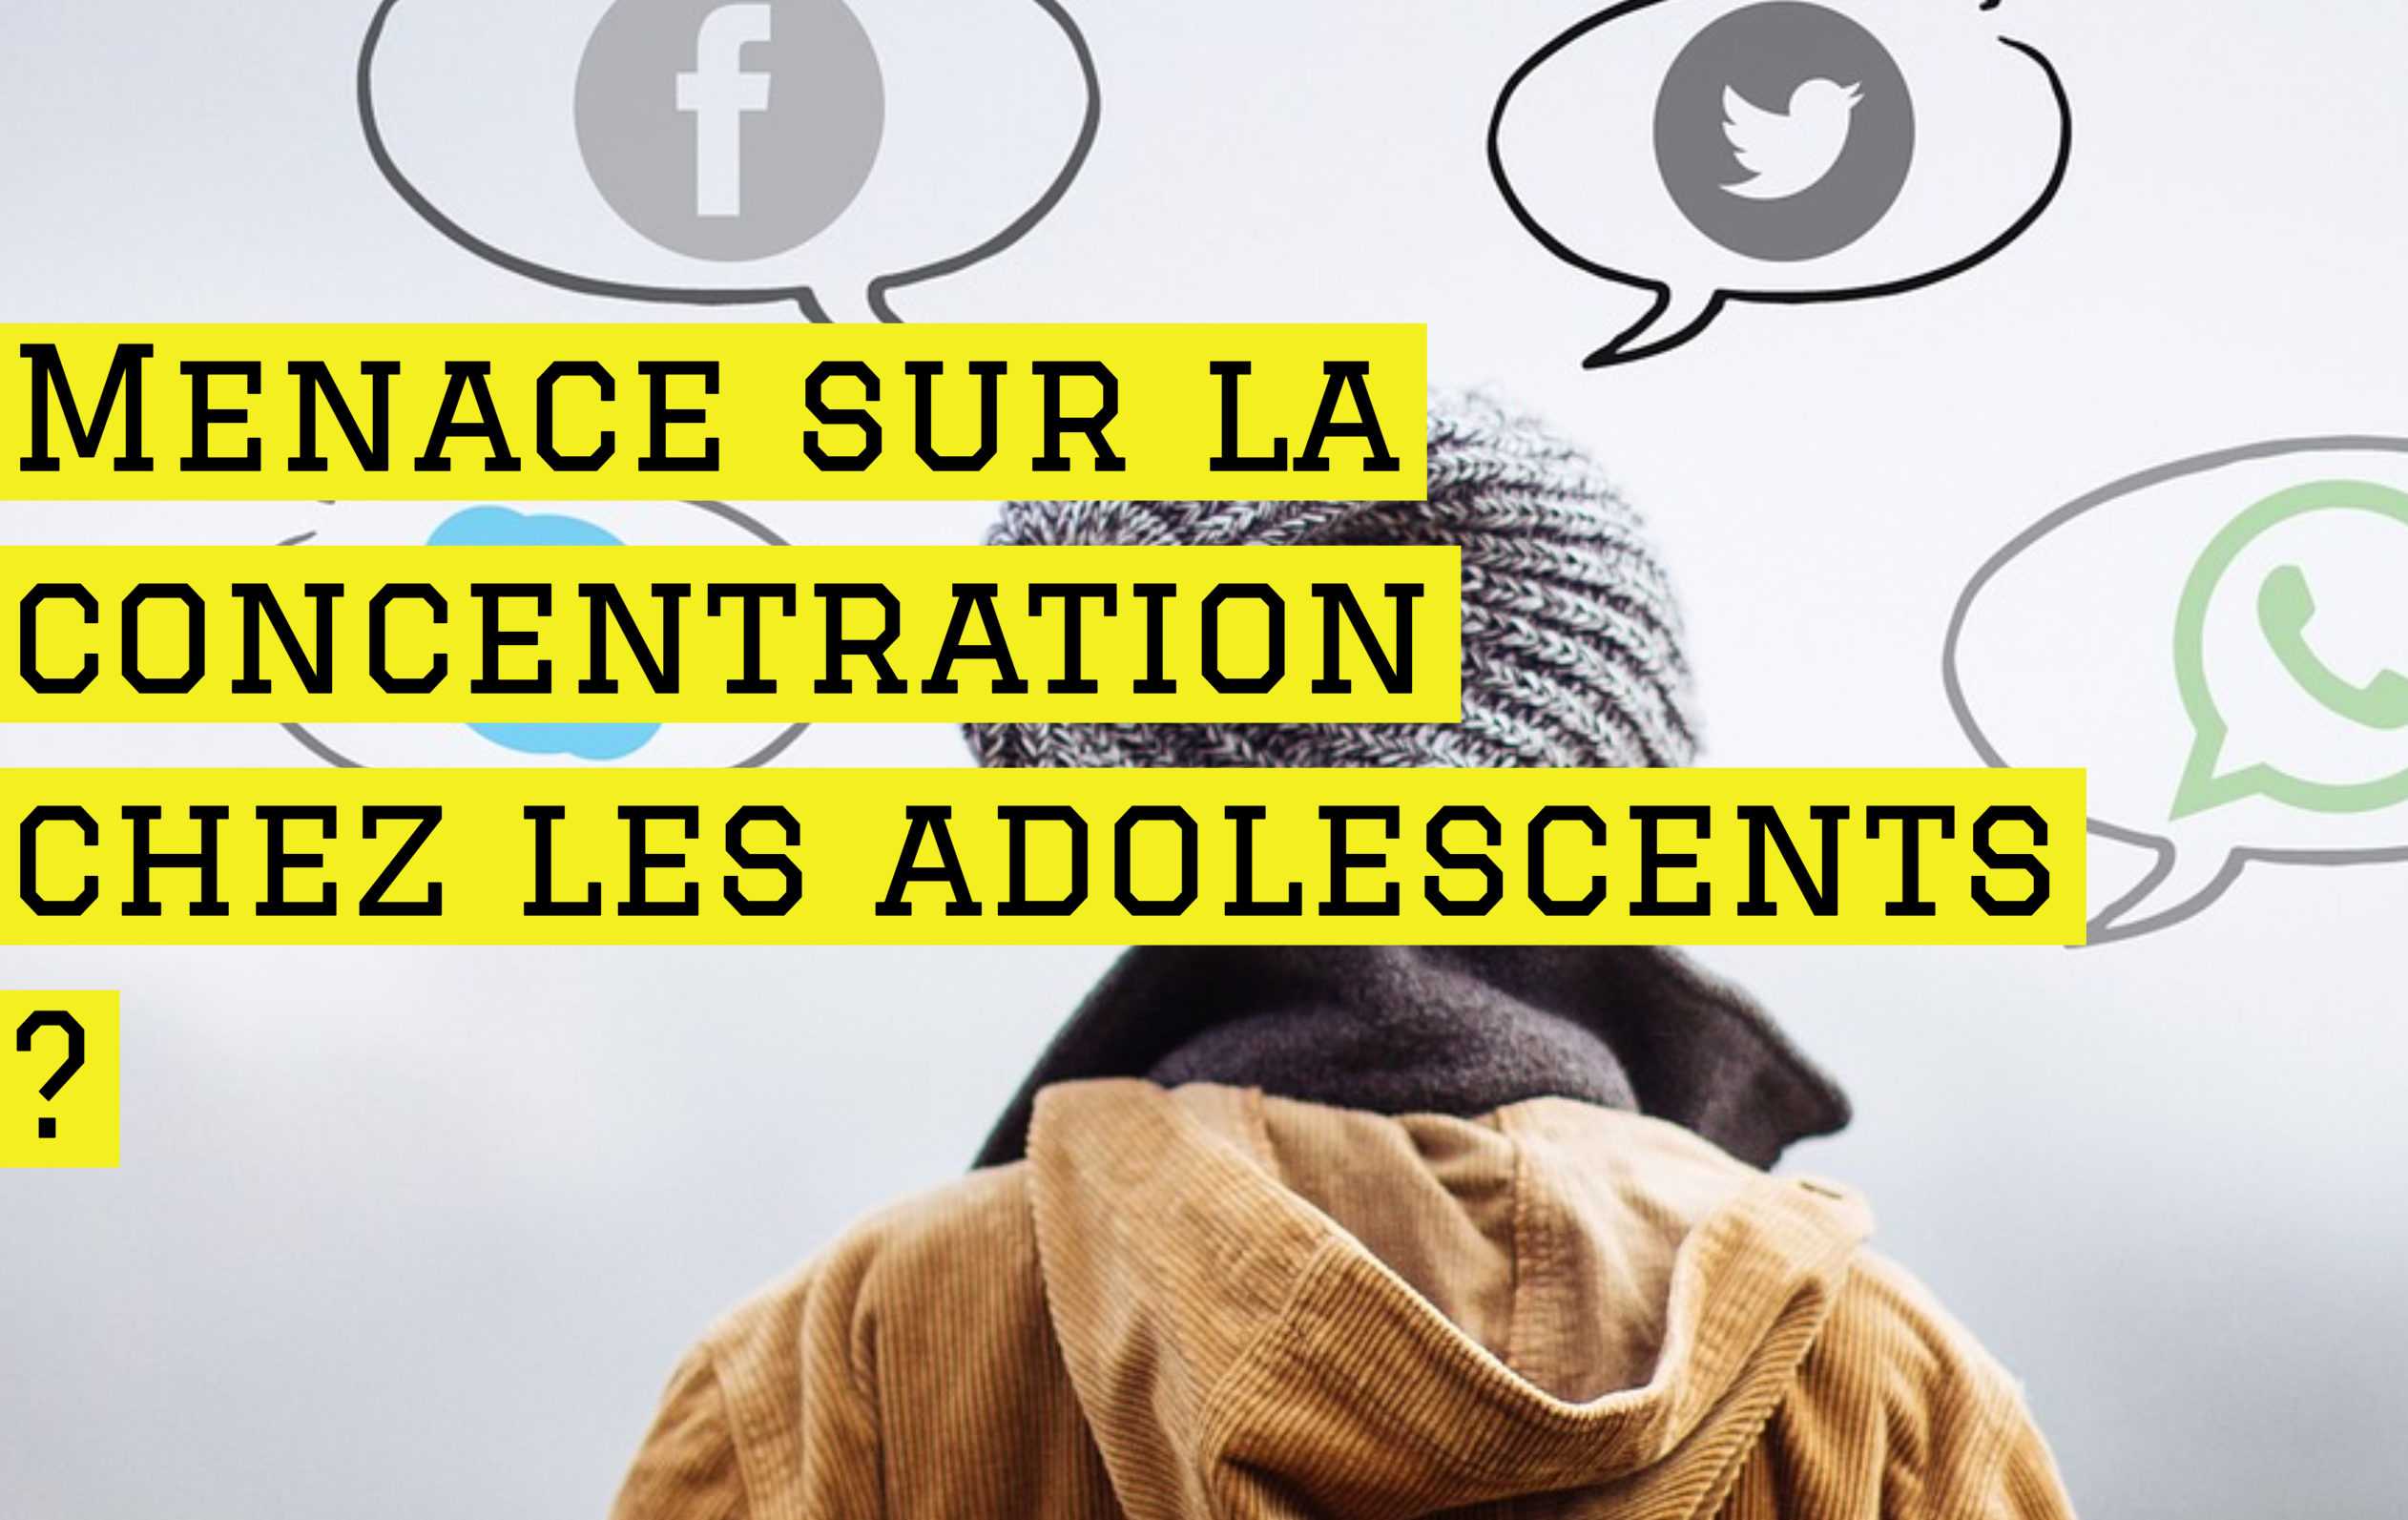 Menace sur la concentration chez les adolescents